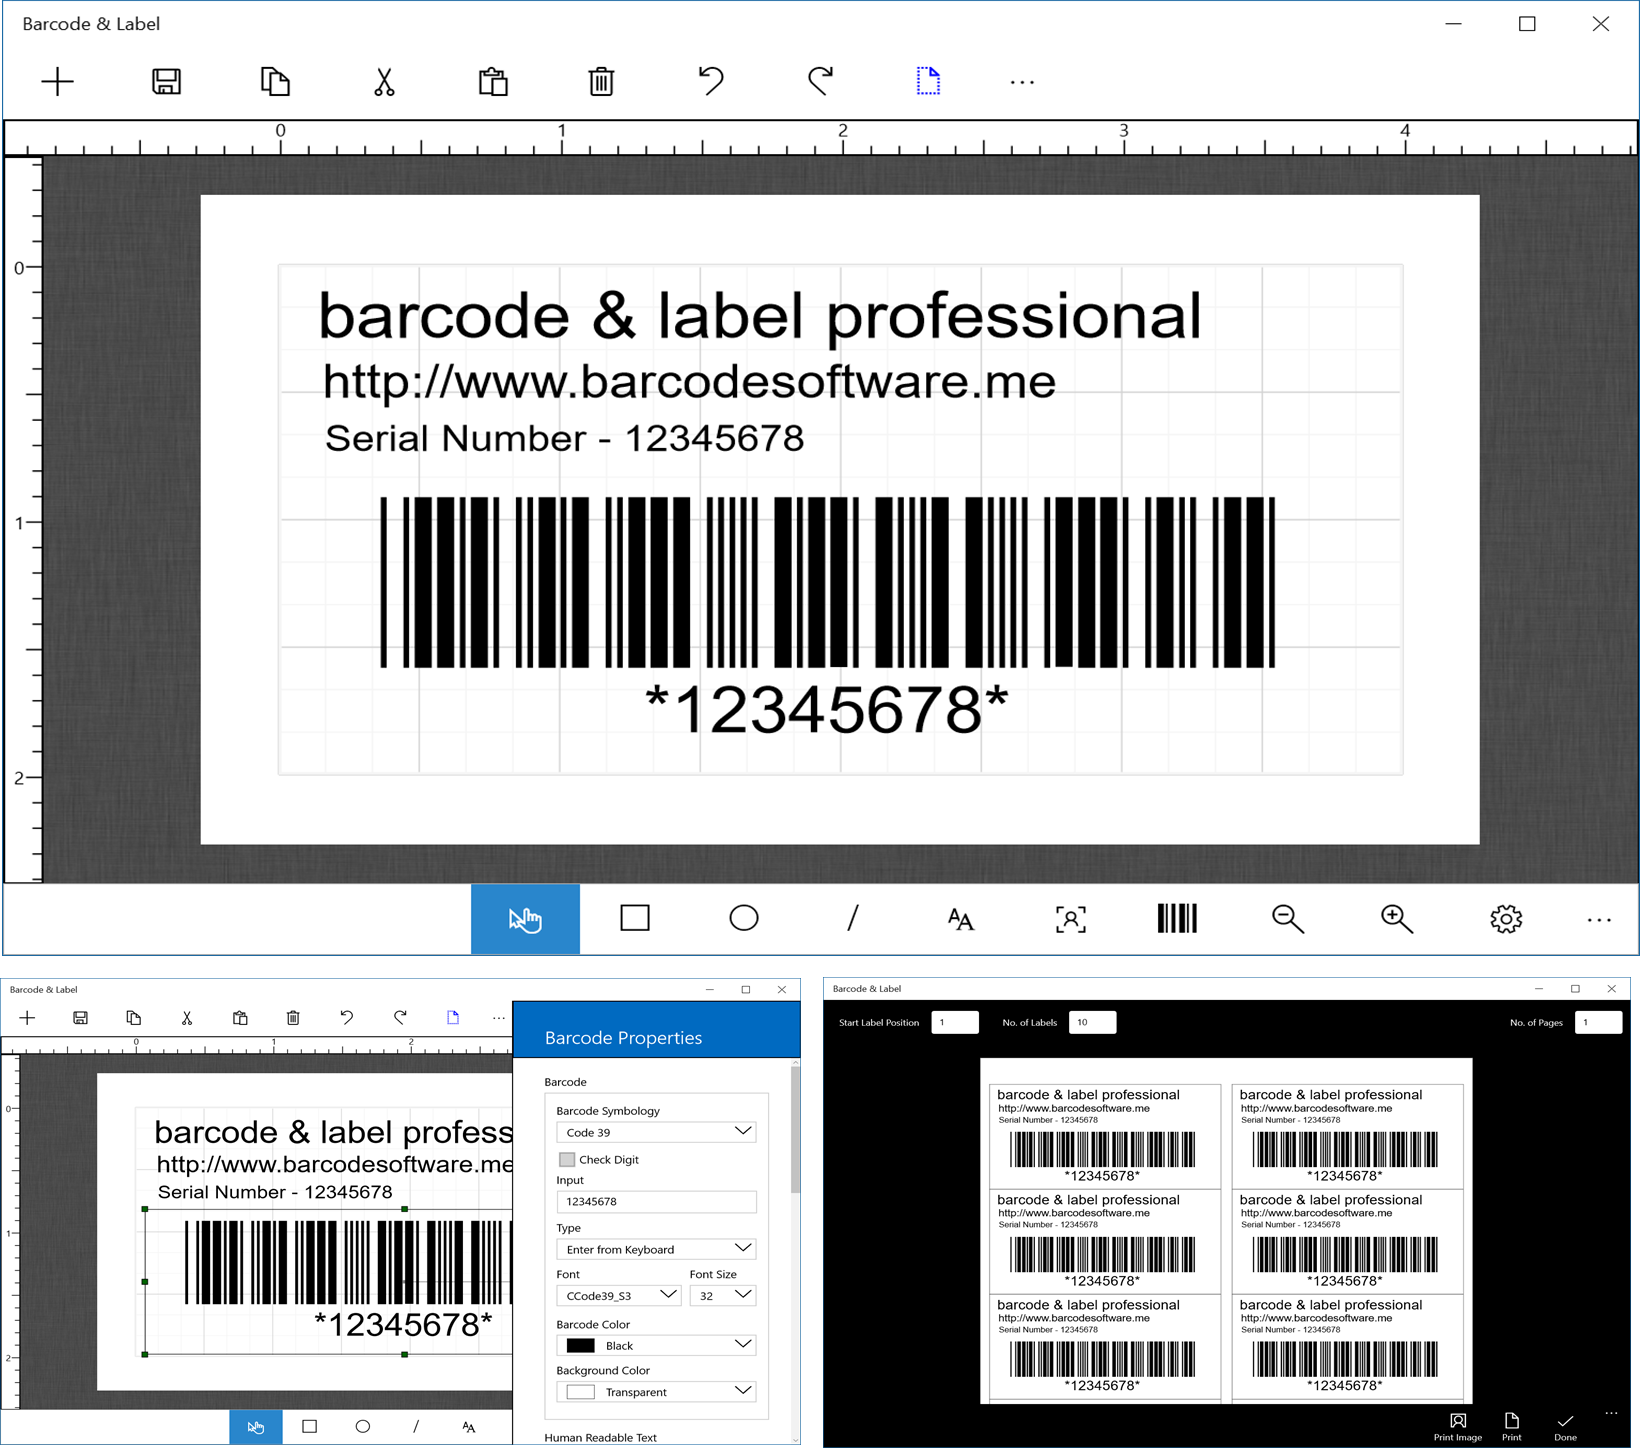 bar code image. Barcode Software